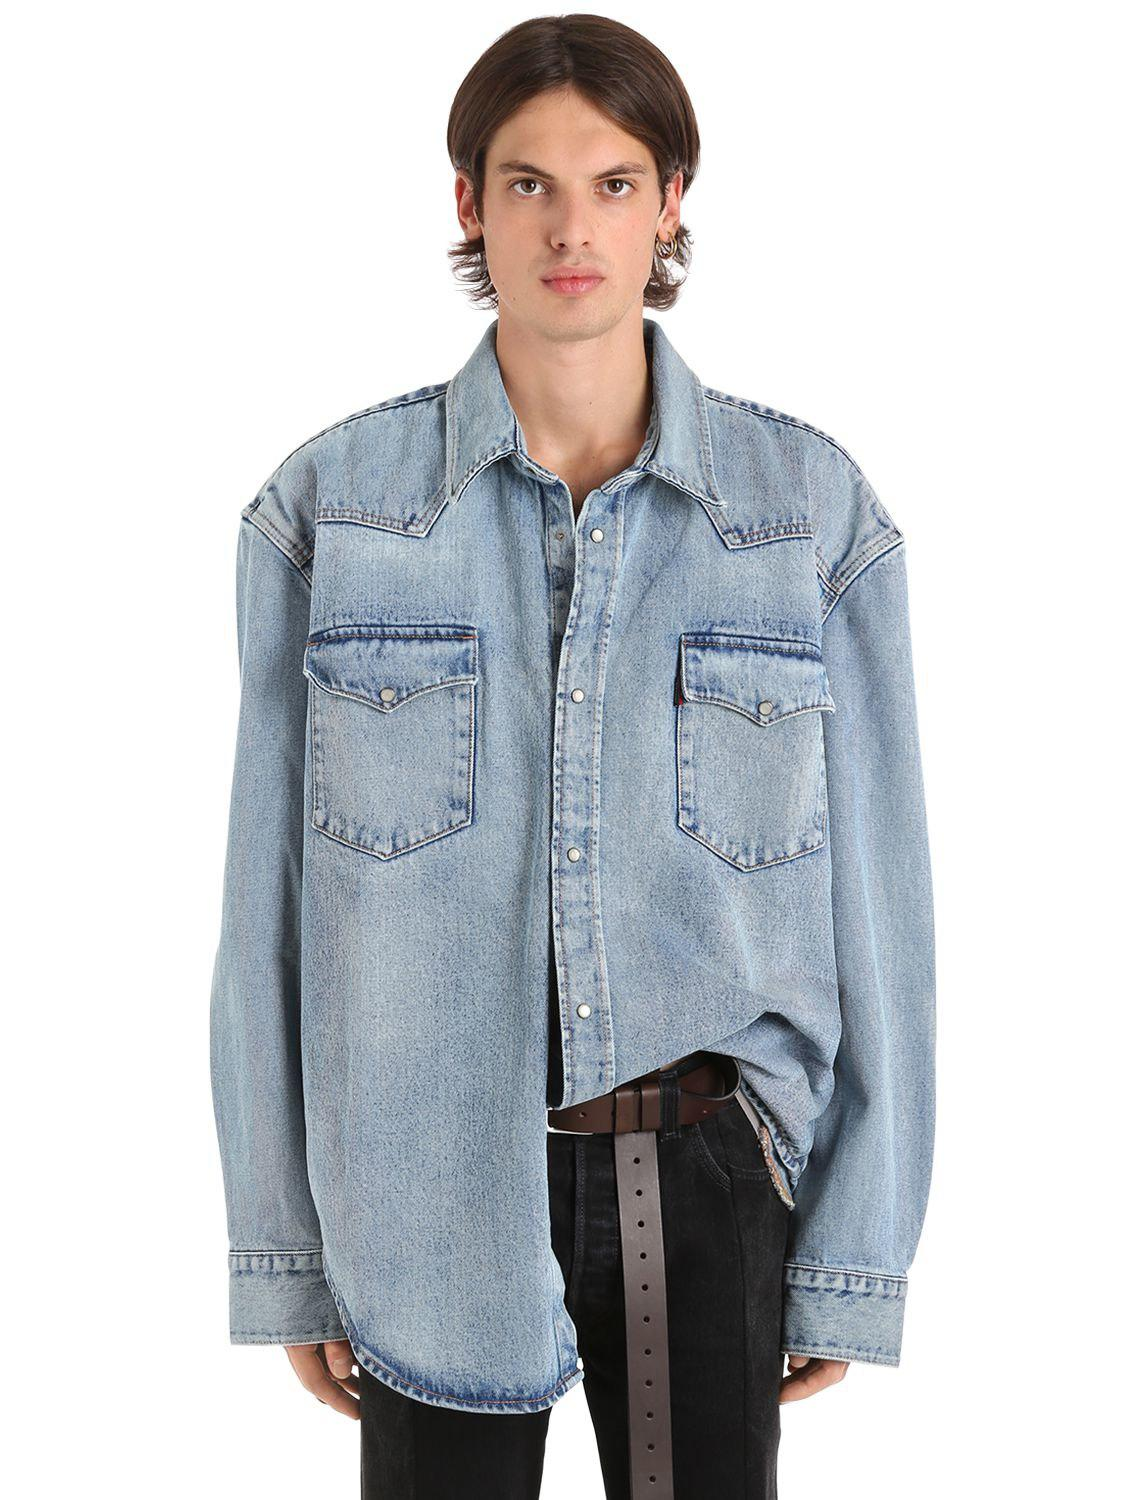 a8d29b4fecf Lyst - Vetements Levi s Heavy Denim Oversized Shirt in Blue for Men